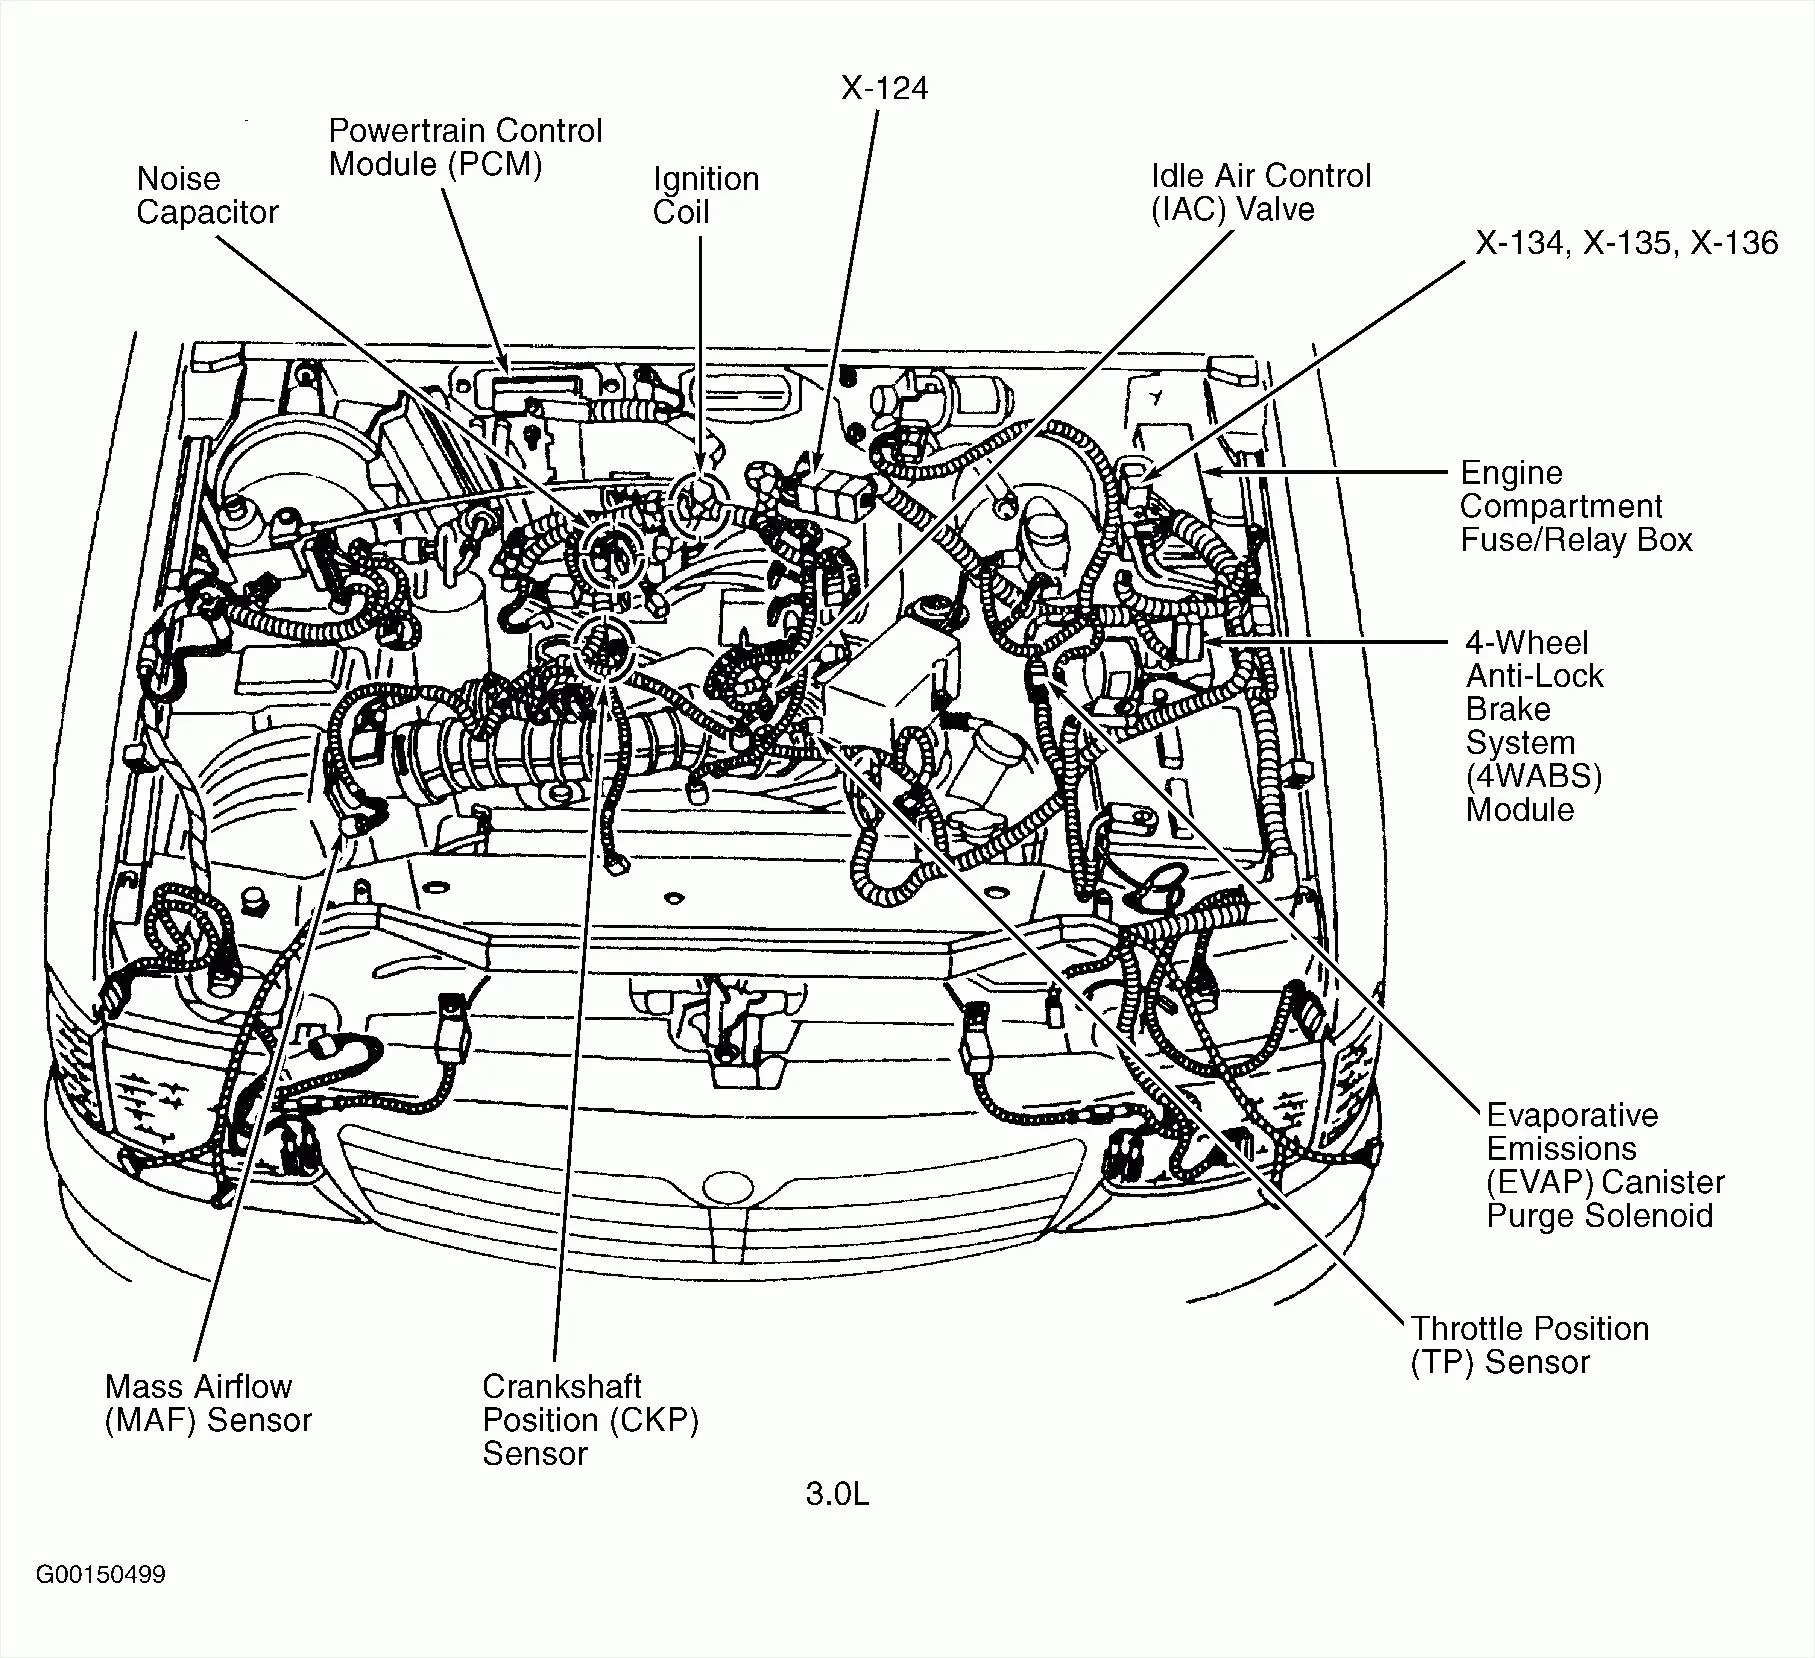 small resolution of audi a6 engine diagram wiring diagram schematic 2002 audi a6 fuse diagram moreover 2001 audi a6 engine diagram in